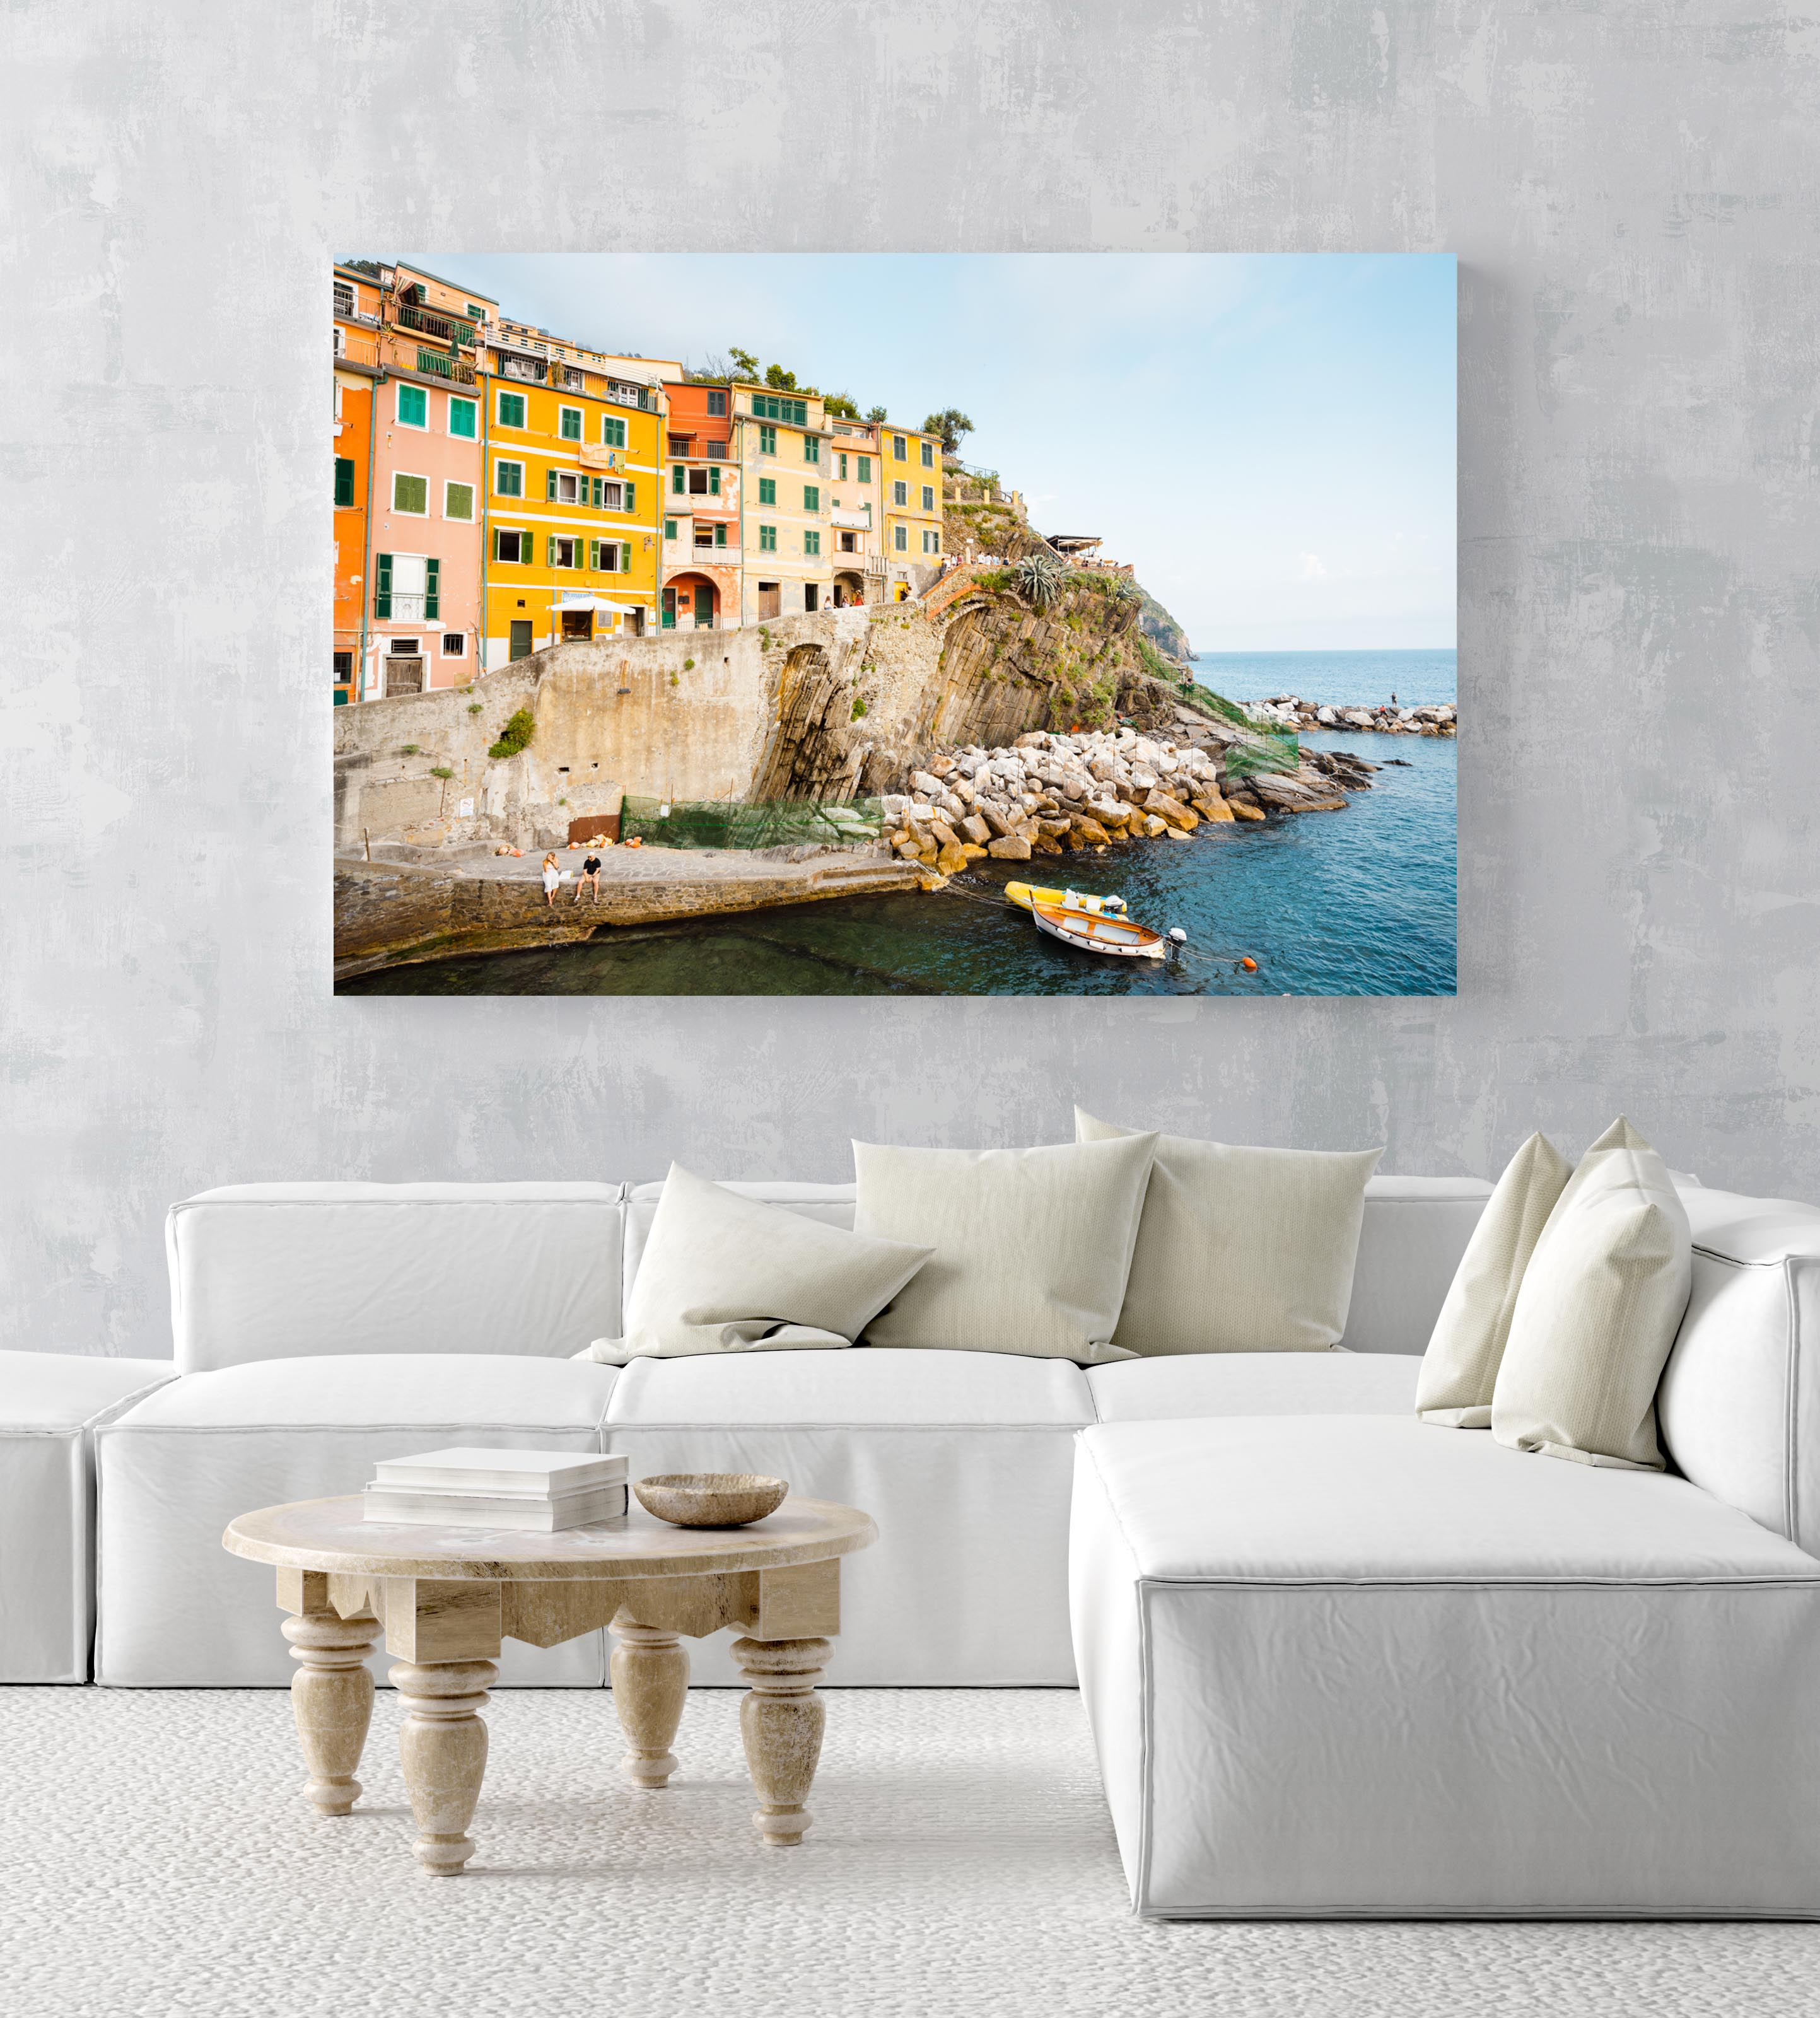 Man and woman sitting alongside docked boats and colorful buildings in Riomaggiore in an acrylic/perspex frame